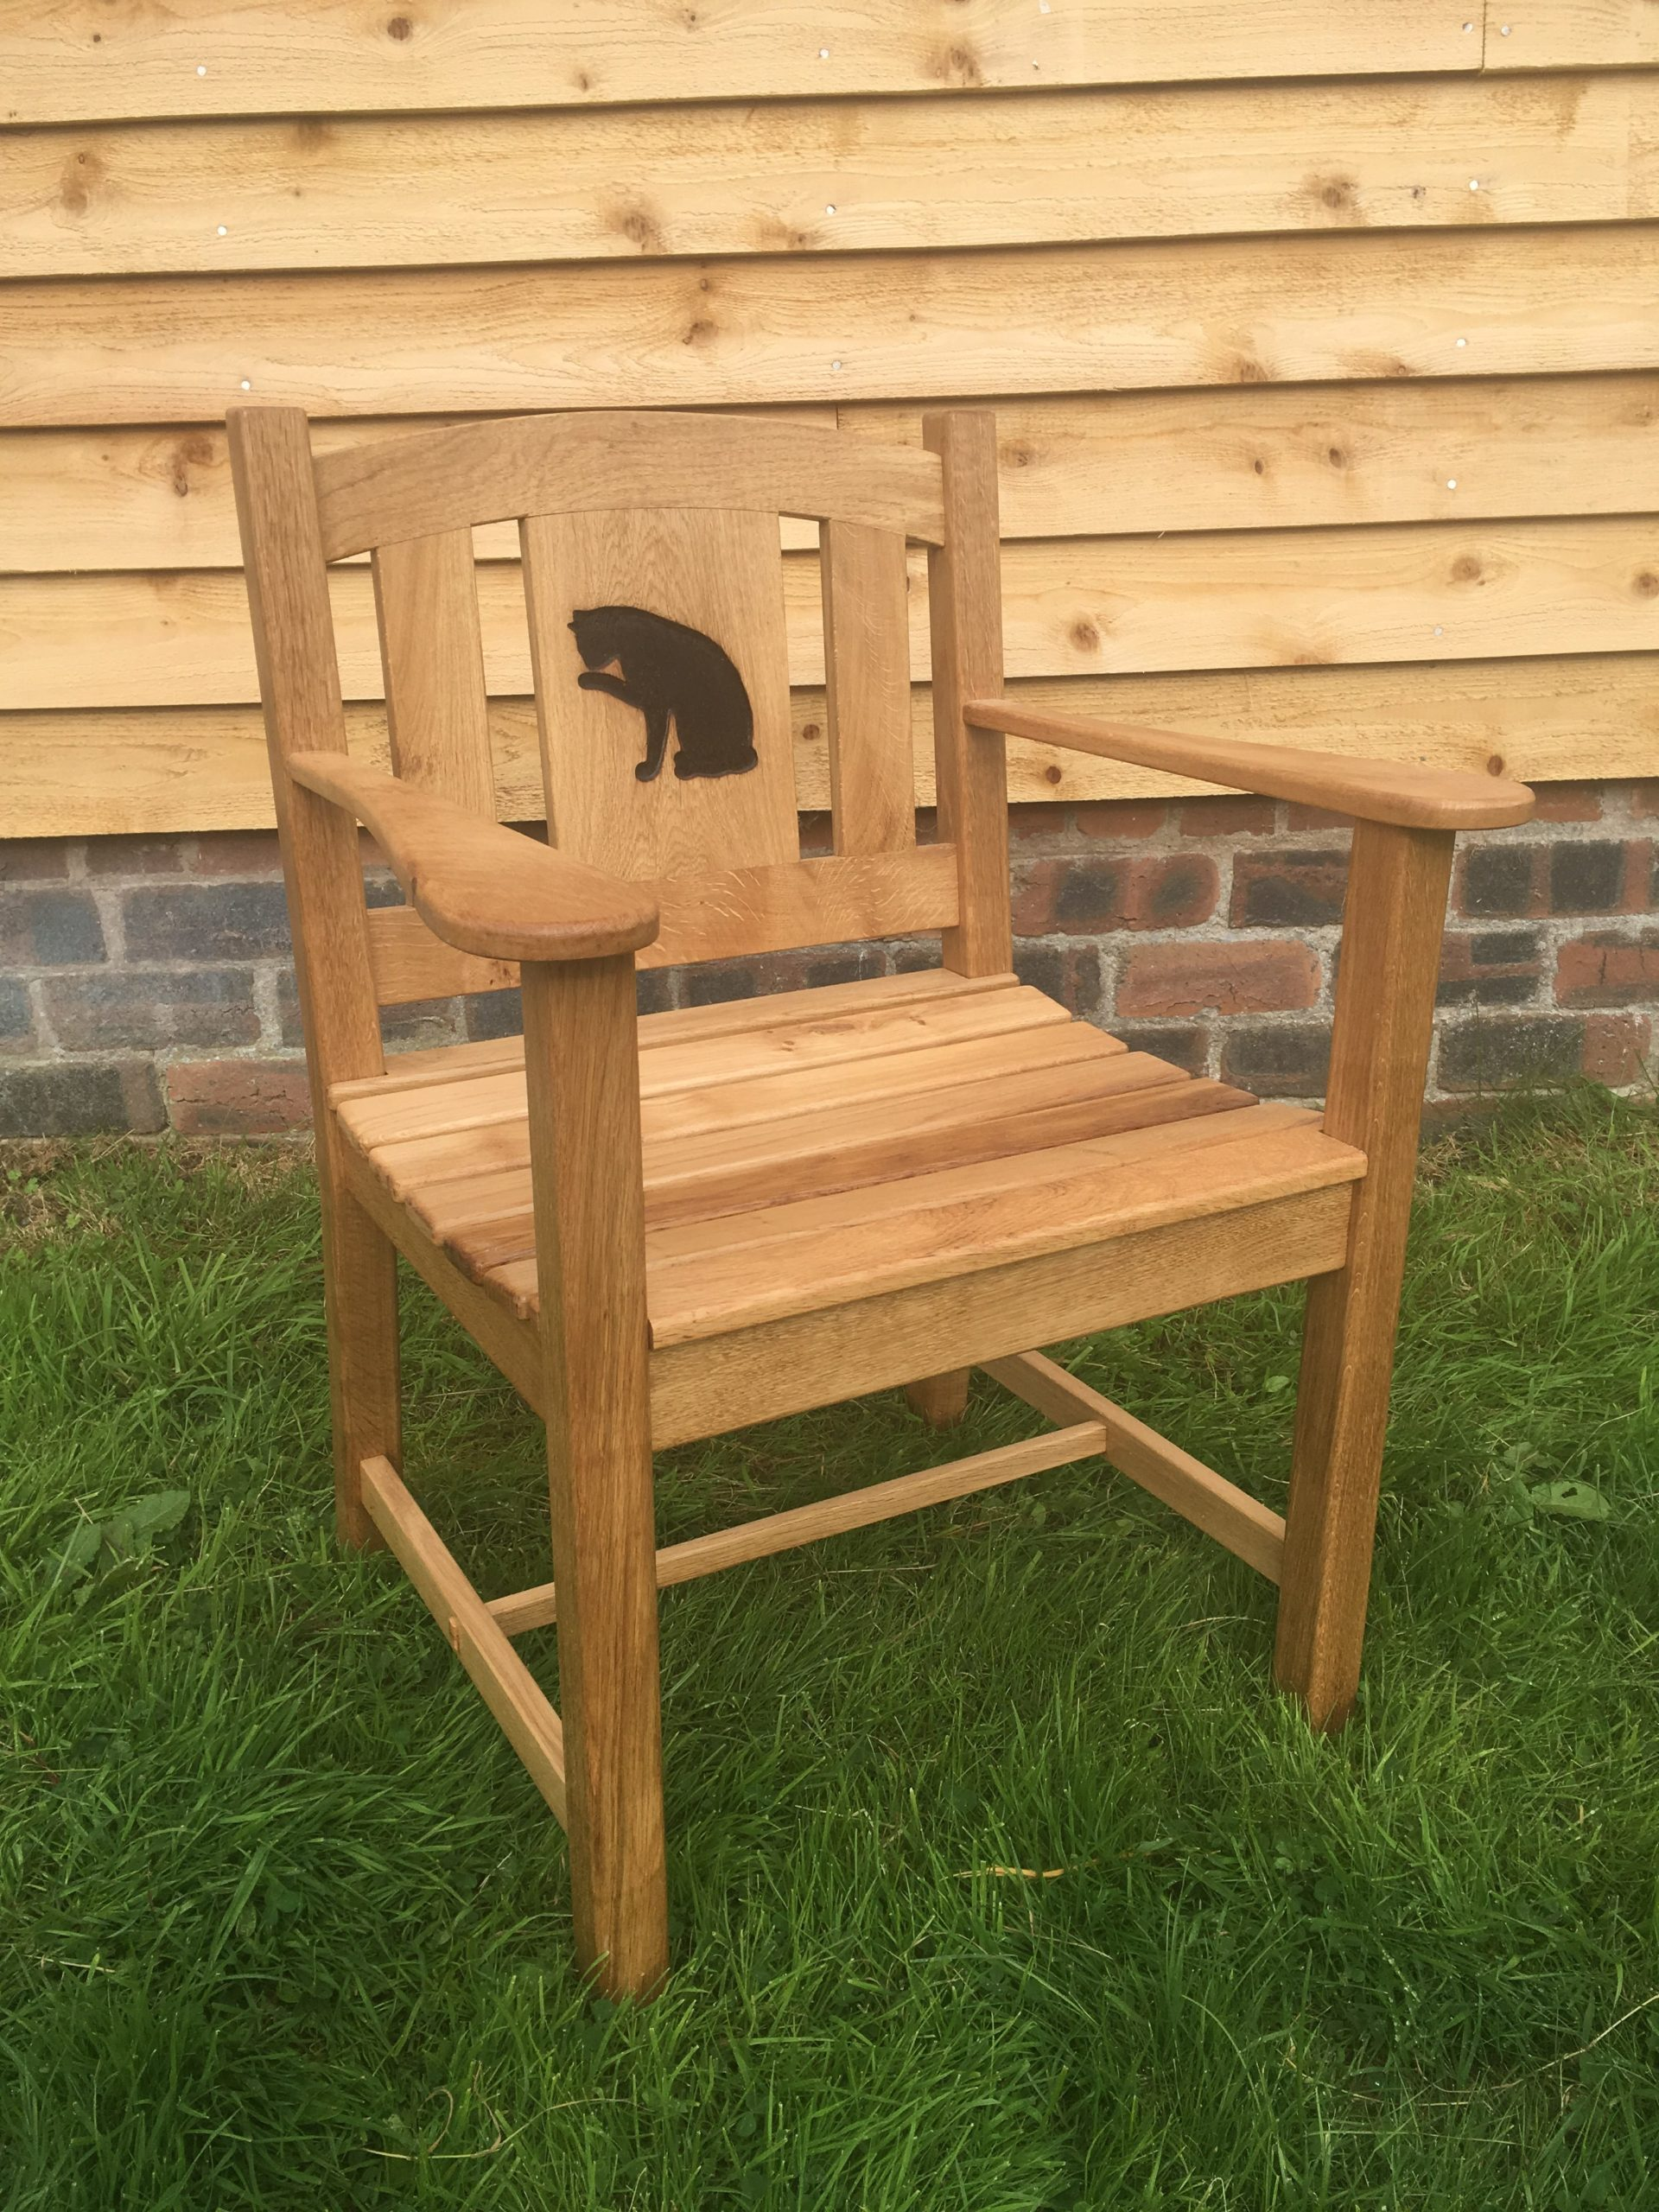 Oak garden chair for a cat lover